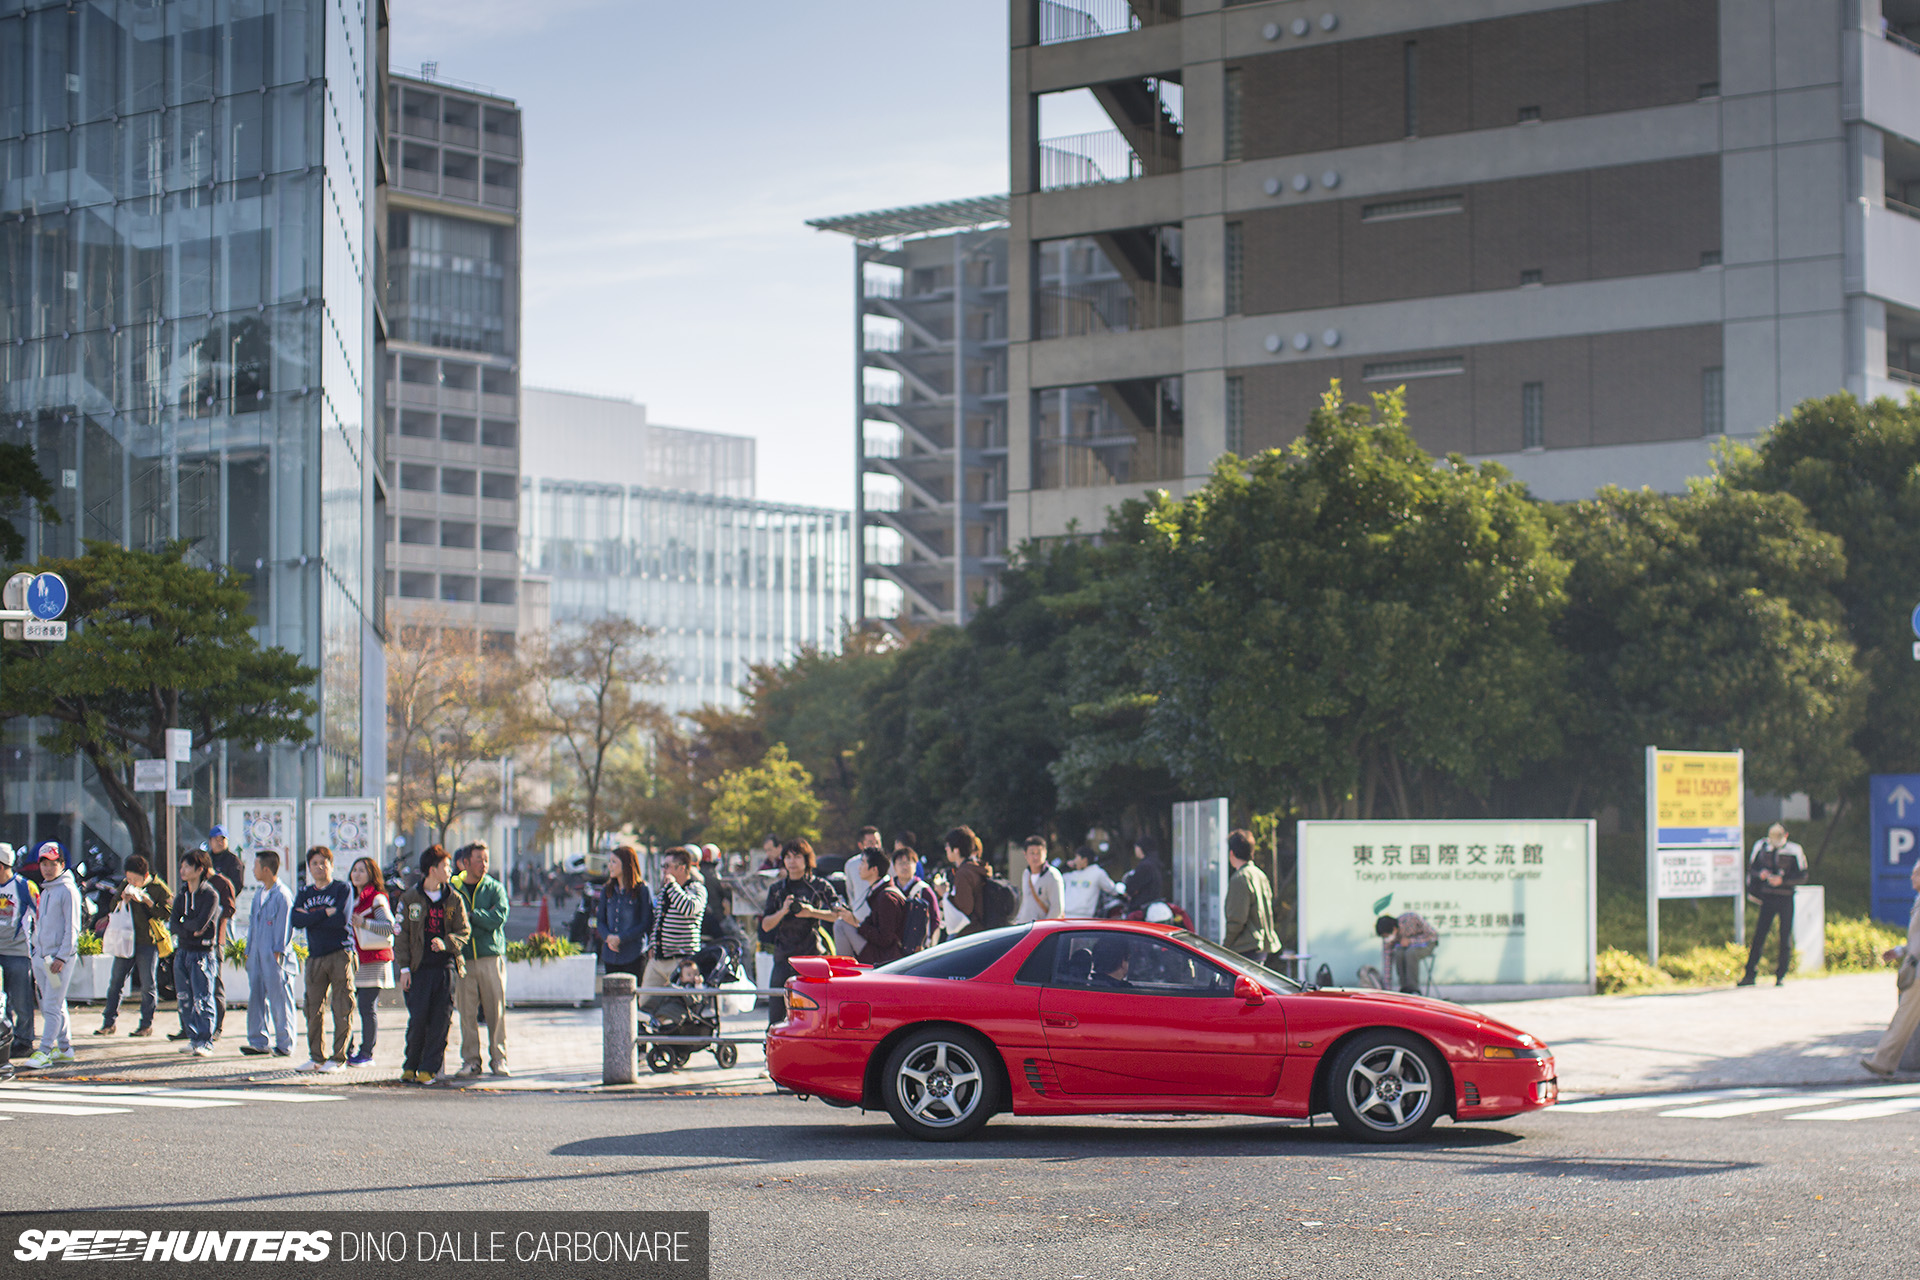 Let's Talk About The Mitsubishi GTO - Speedhunters